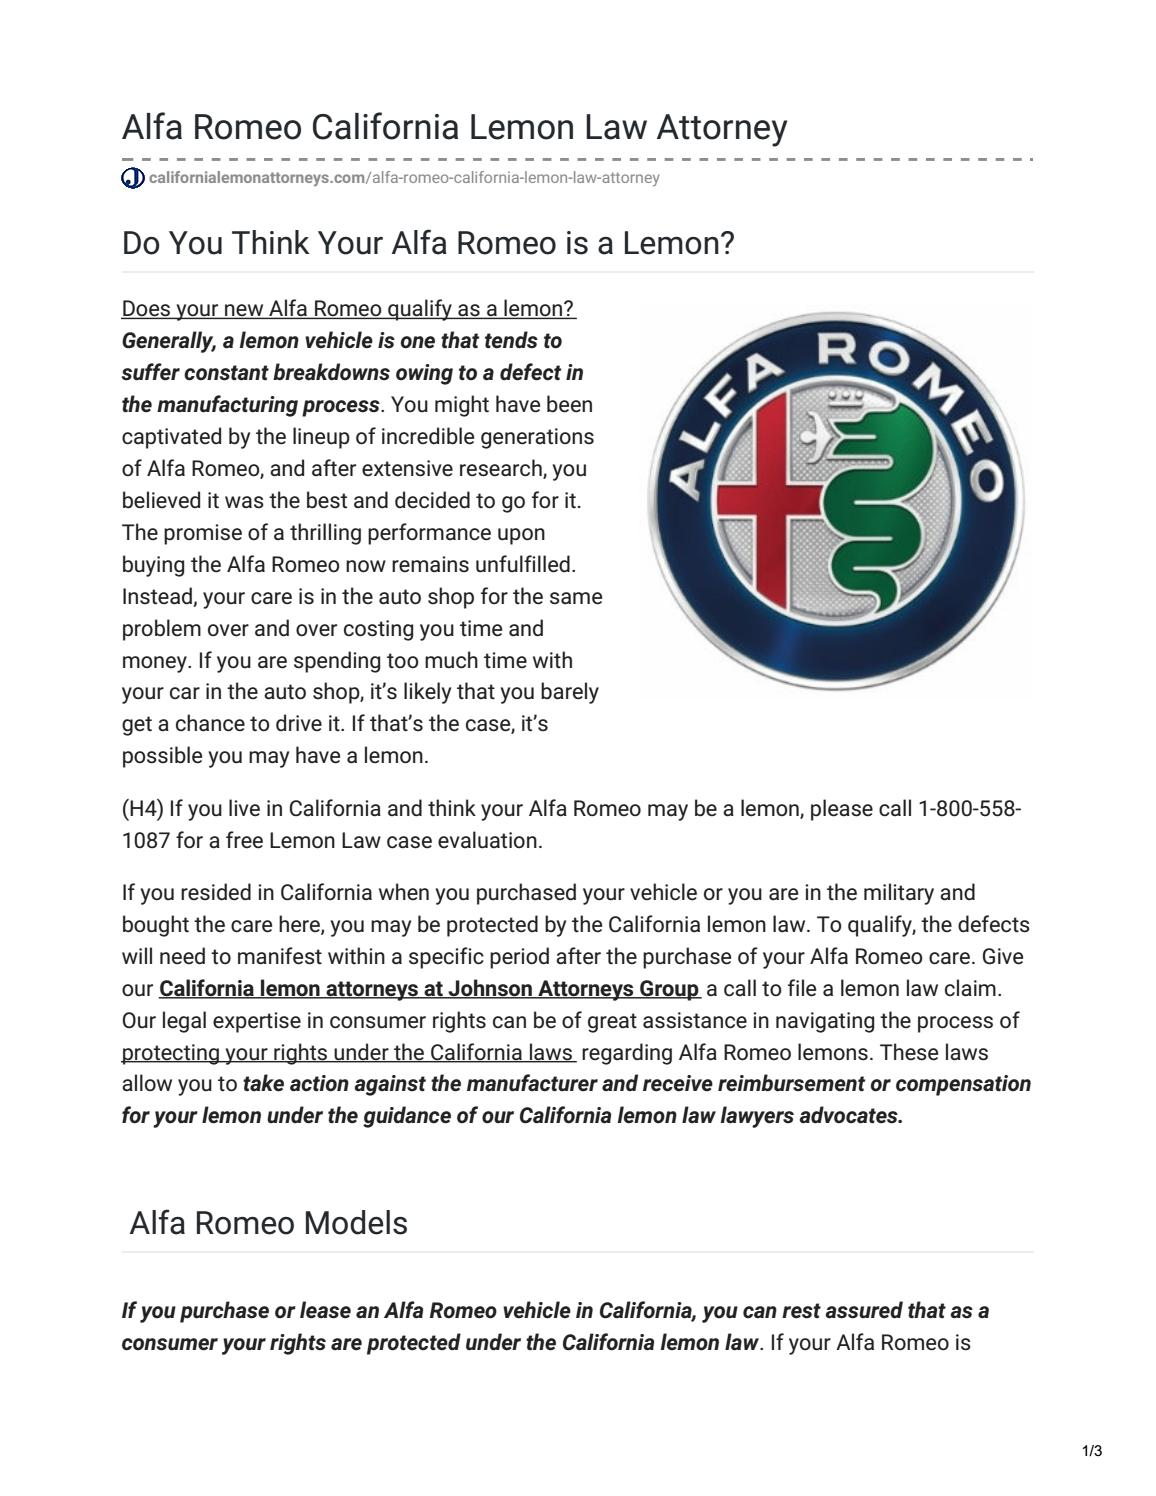 Lemon Law California >> Do You Think Your Alfa Romeo Is A Lemon By California Lemon